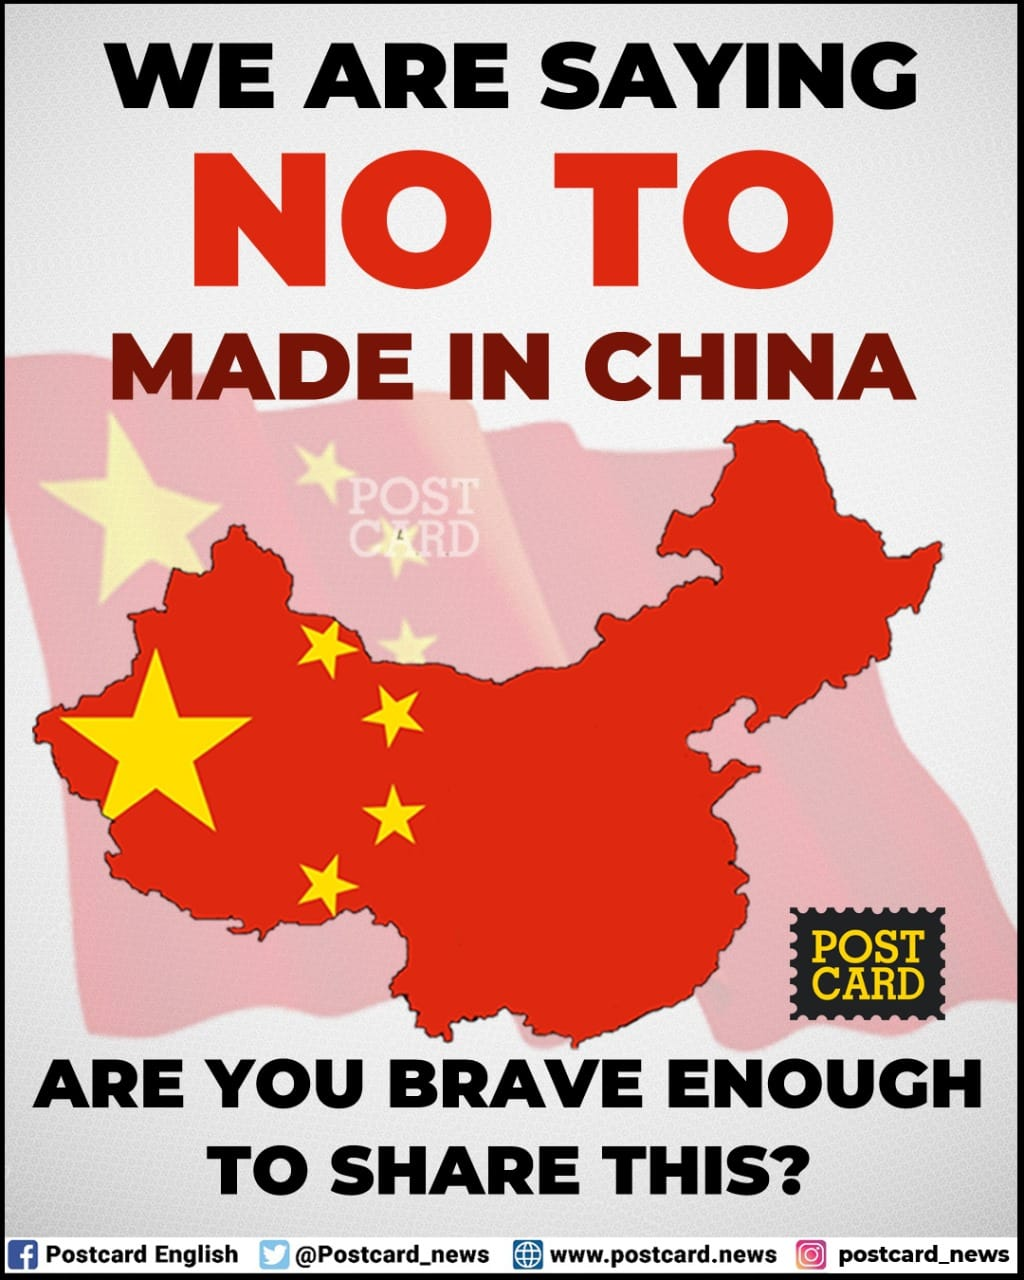 A Say No to Made In China poster from social media